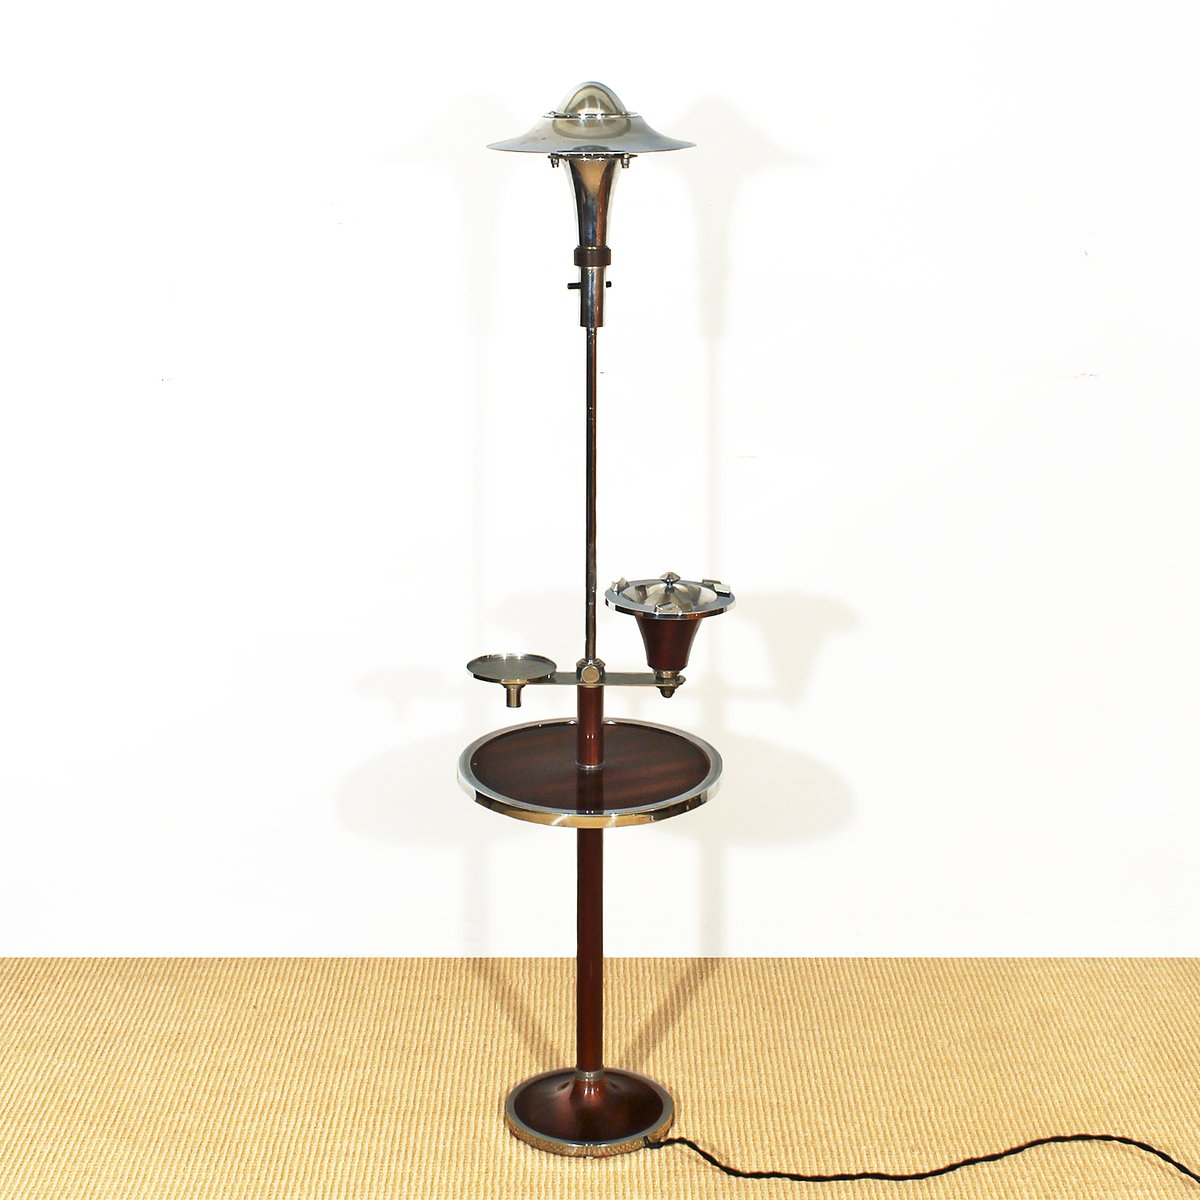 French art deco smoker 39 s floor lamp 1930s for sale at pamono for 1930s floor lamp